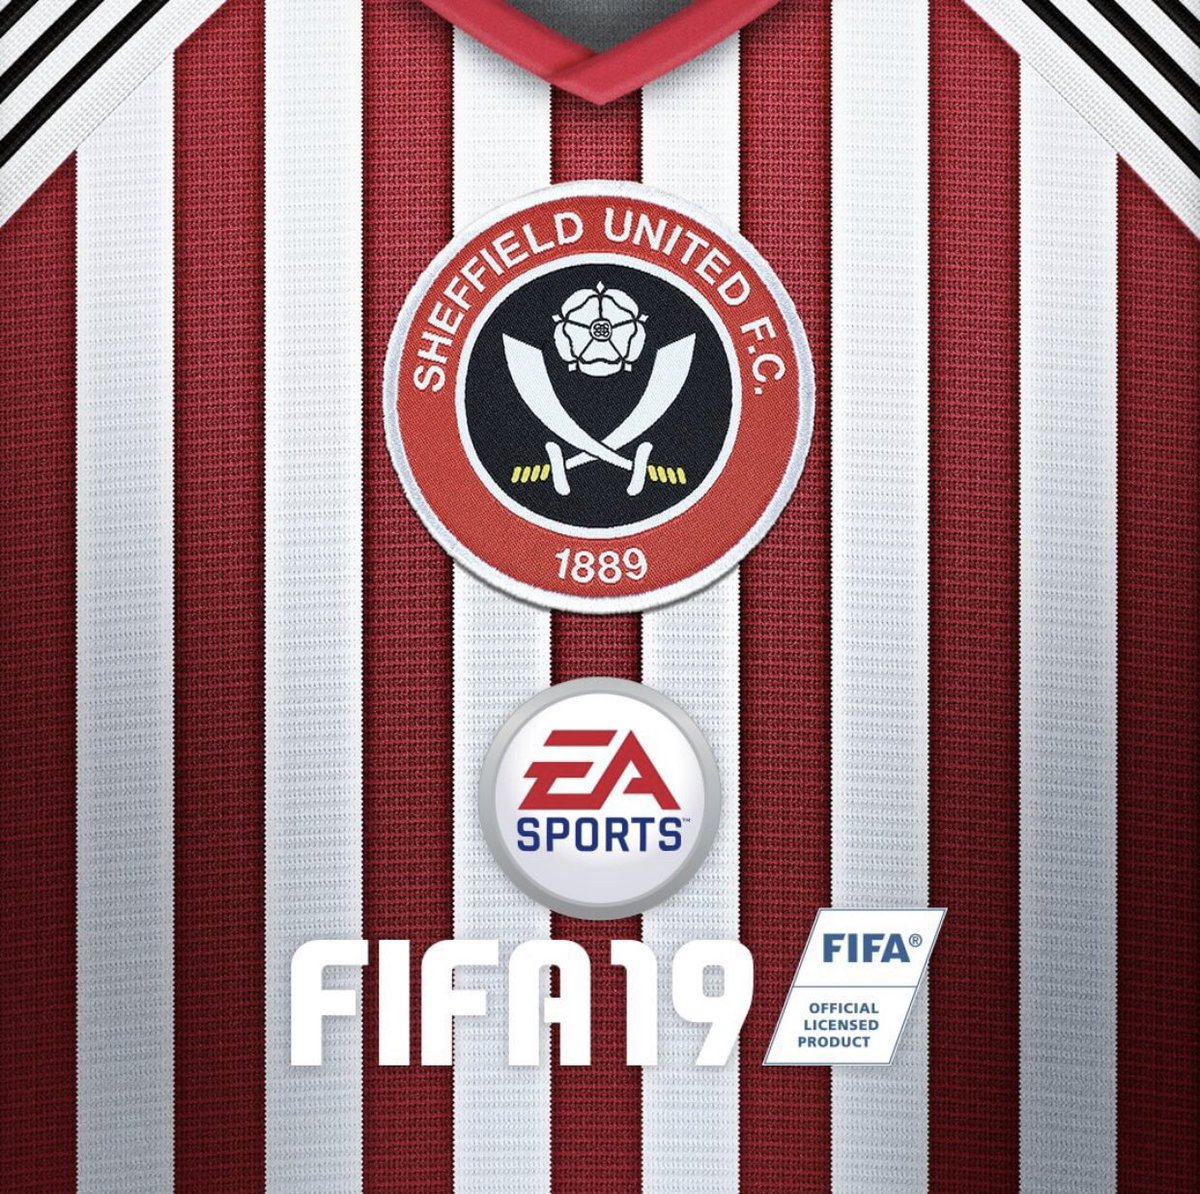 🤩 🔴⚪️ We've got some #FIFA19 Club packs to giveaway!! Simply ❤️ and R/T for the chance to win 🎉 Winners will be announced on Monday at 12:00noon. Good luck 😉 #twitterblades